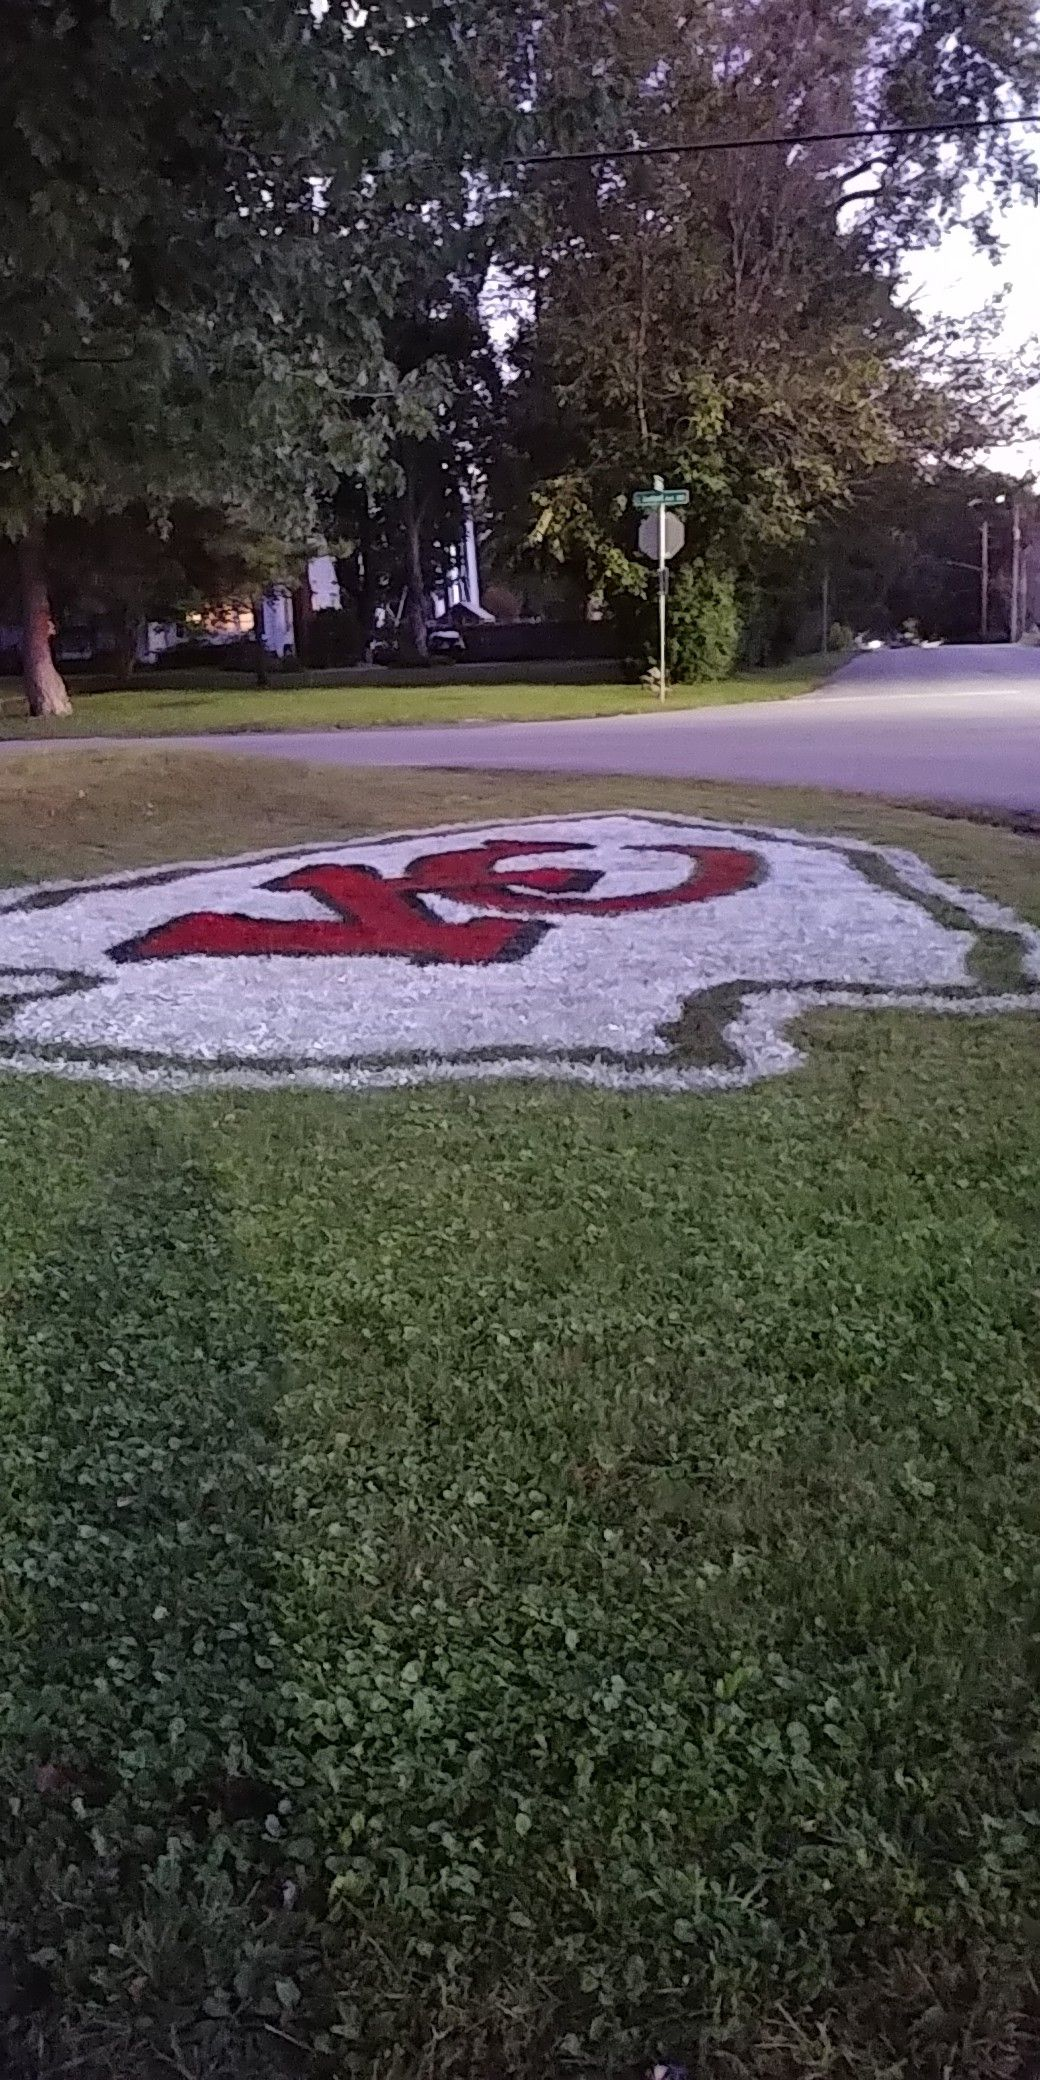 This Is The 4th Year For Painting The Logo In My Yard In 2020